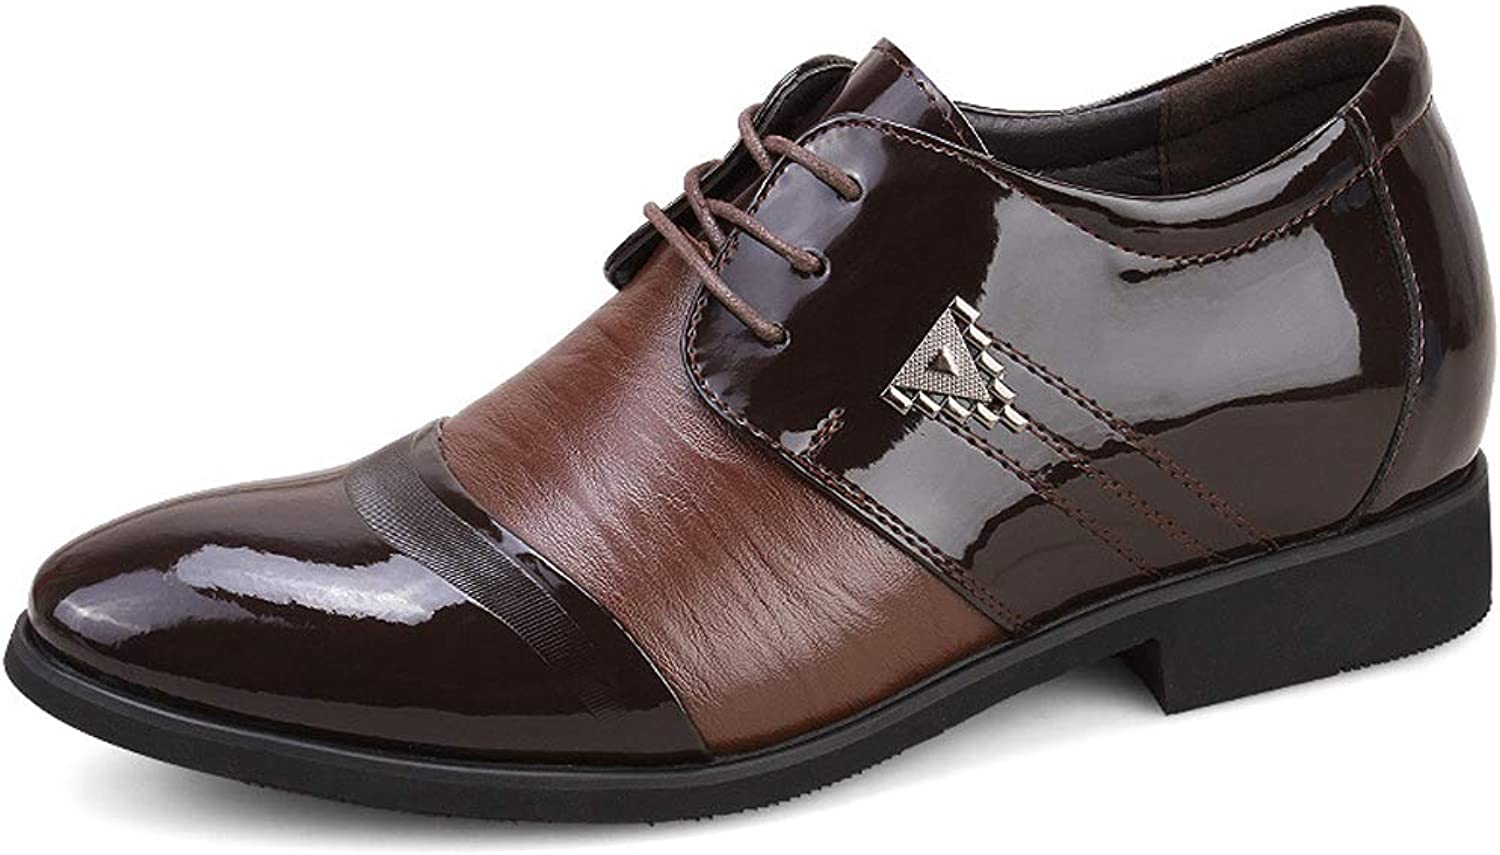 TYX-SS Men'S Leather shoes Pointed British Handmade shoes Business Dress Men'S shoes Increased Leather shoes